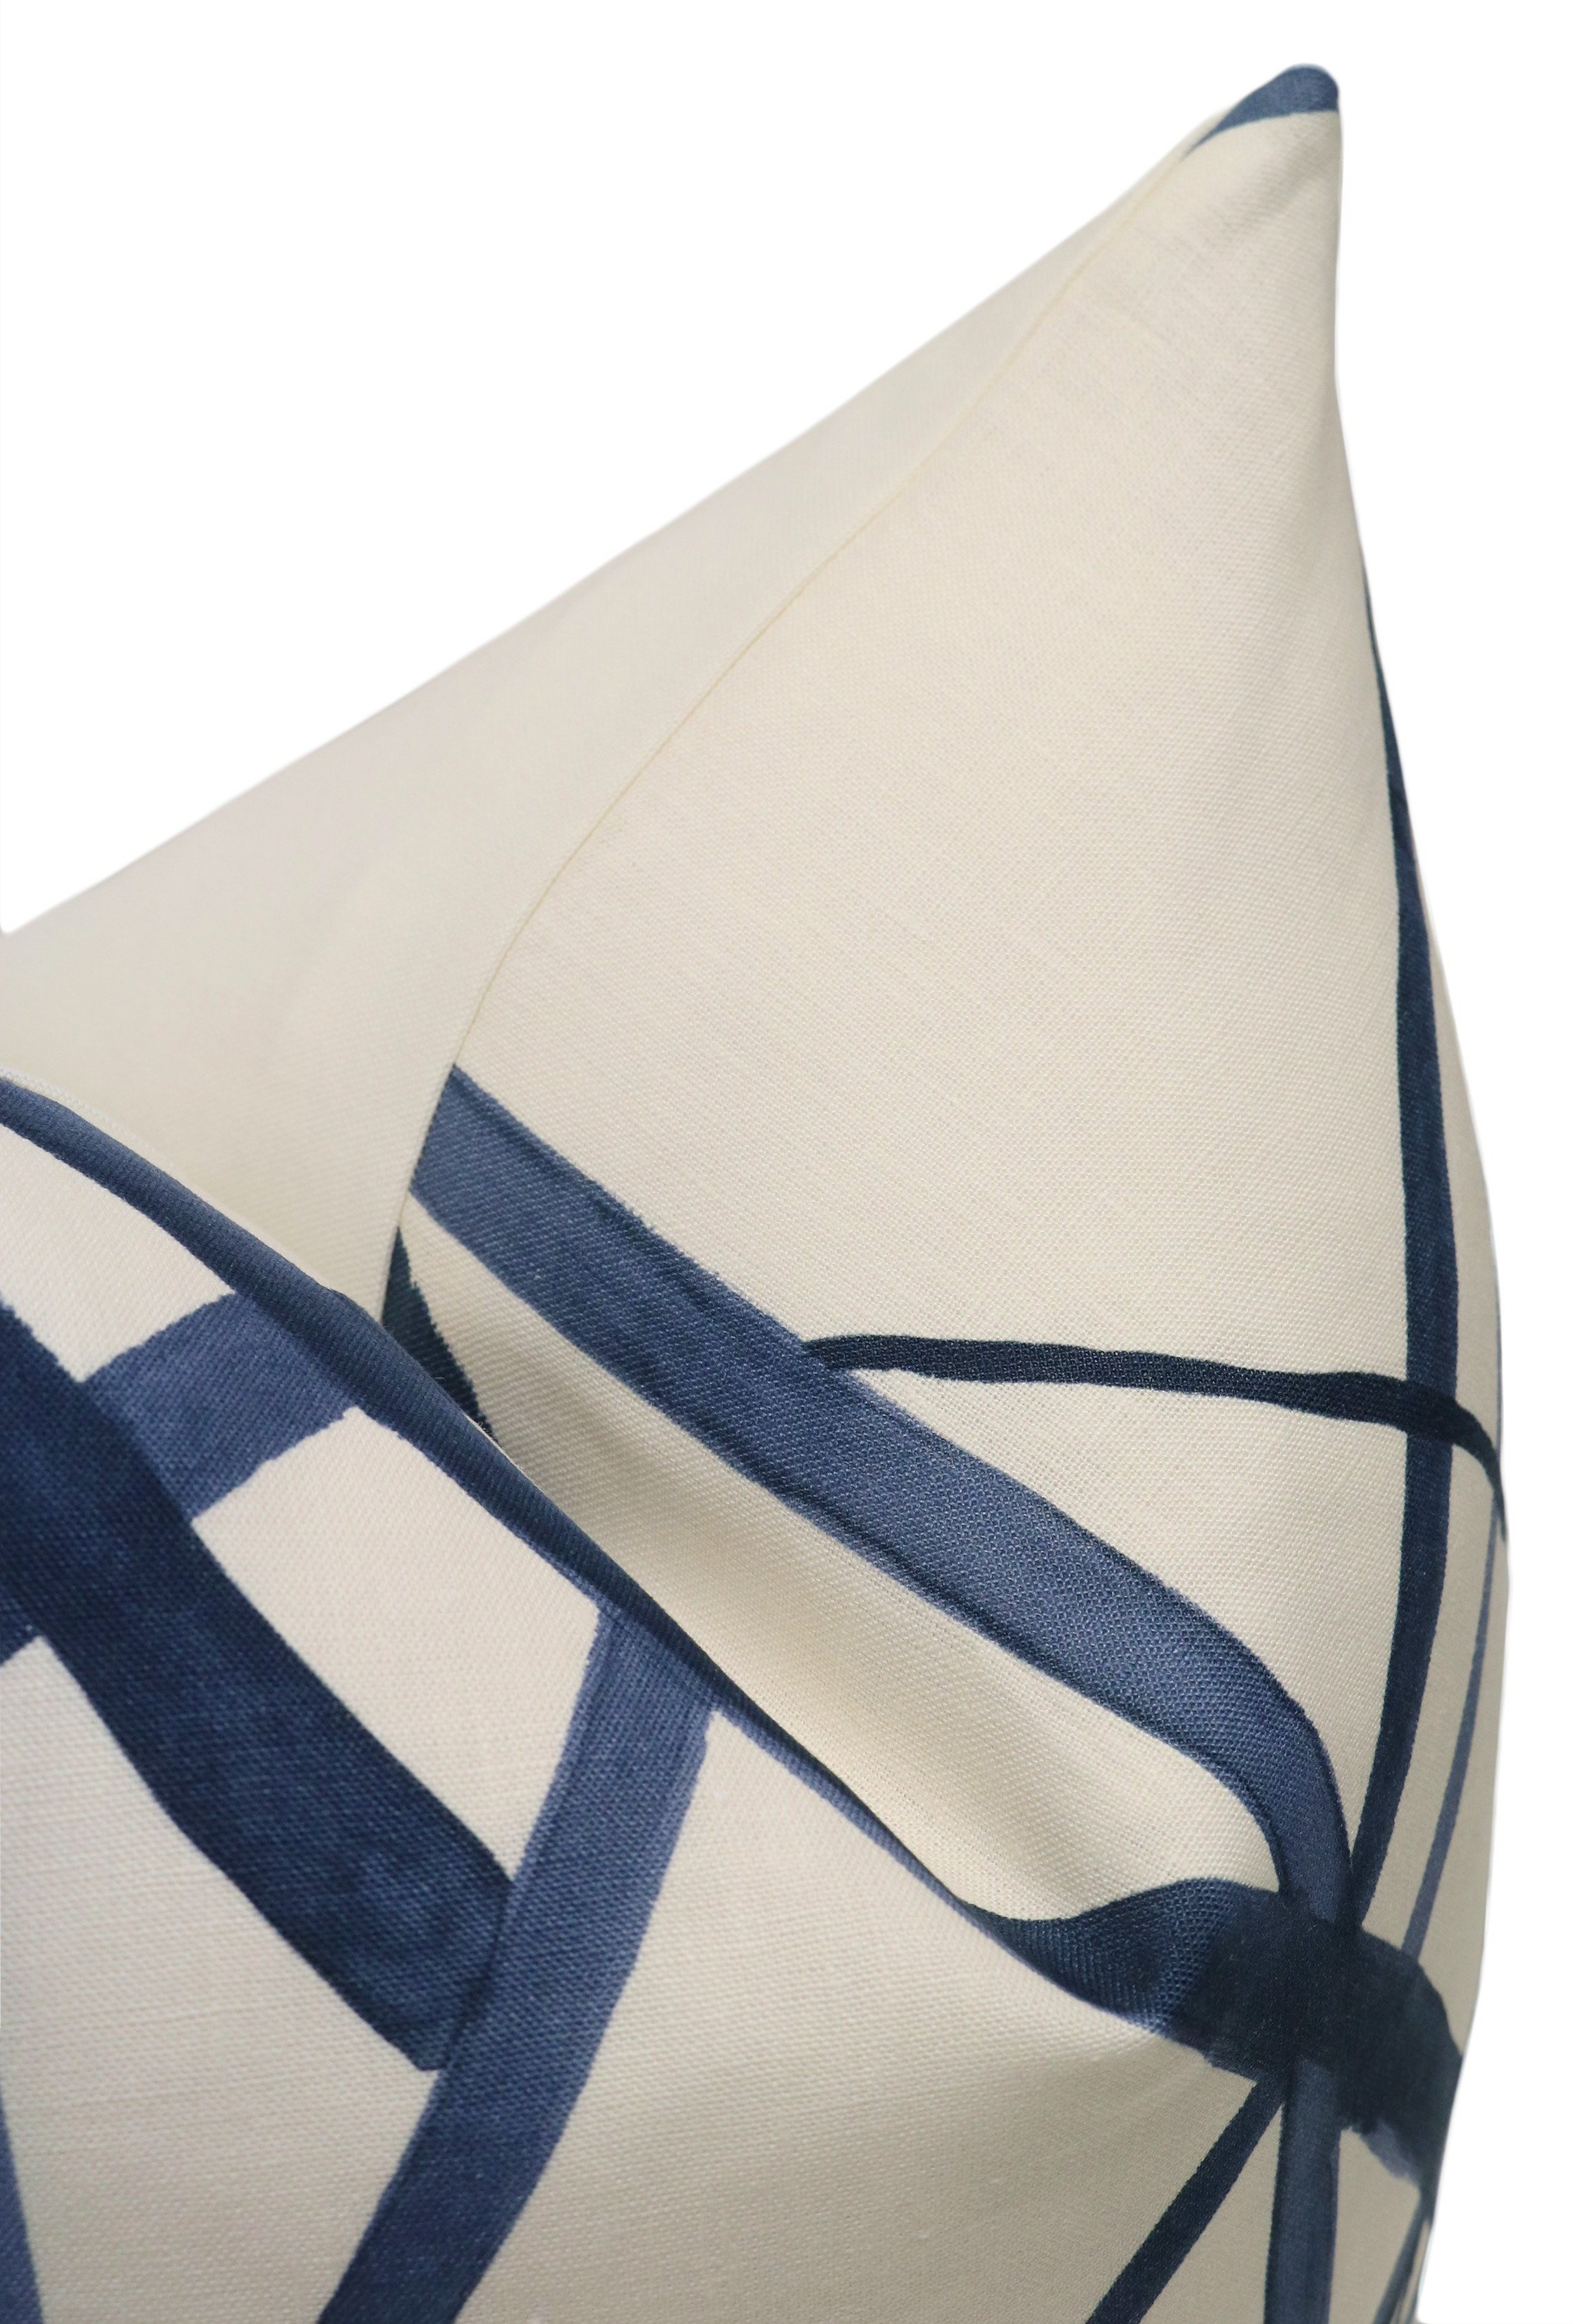 """Channels Pillow Cover, Periwinkle, 20"""" x 20"""""""